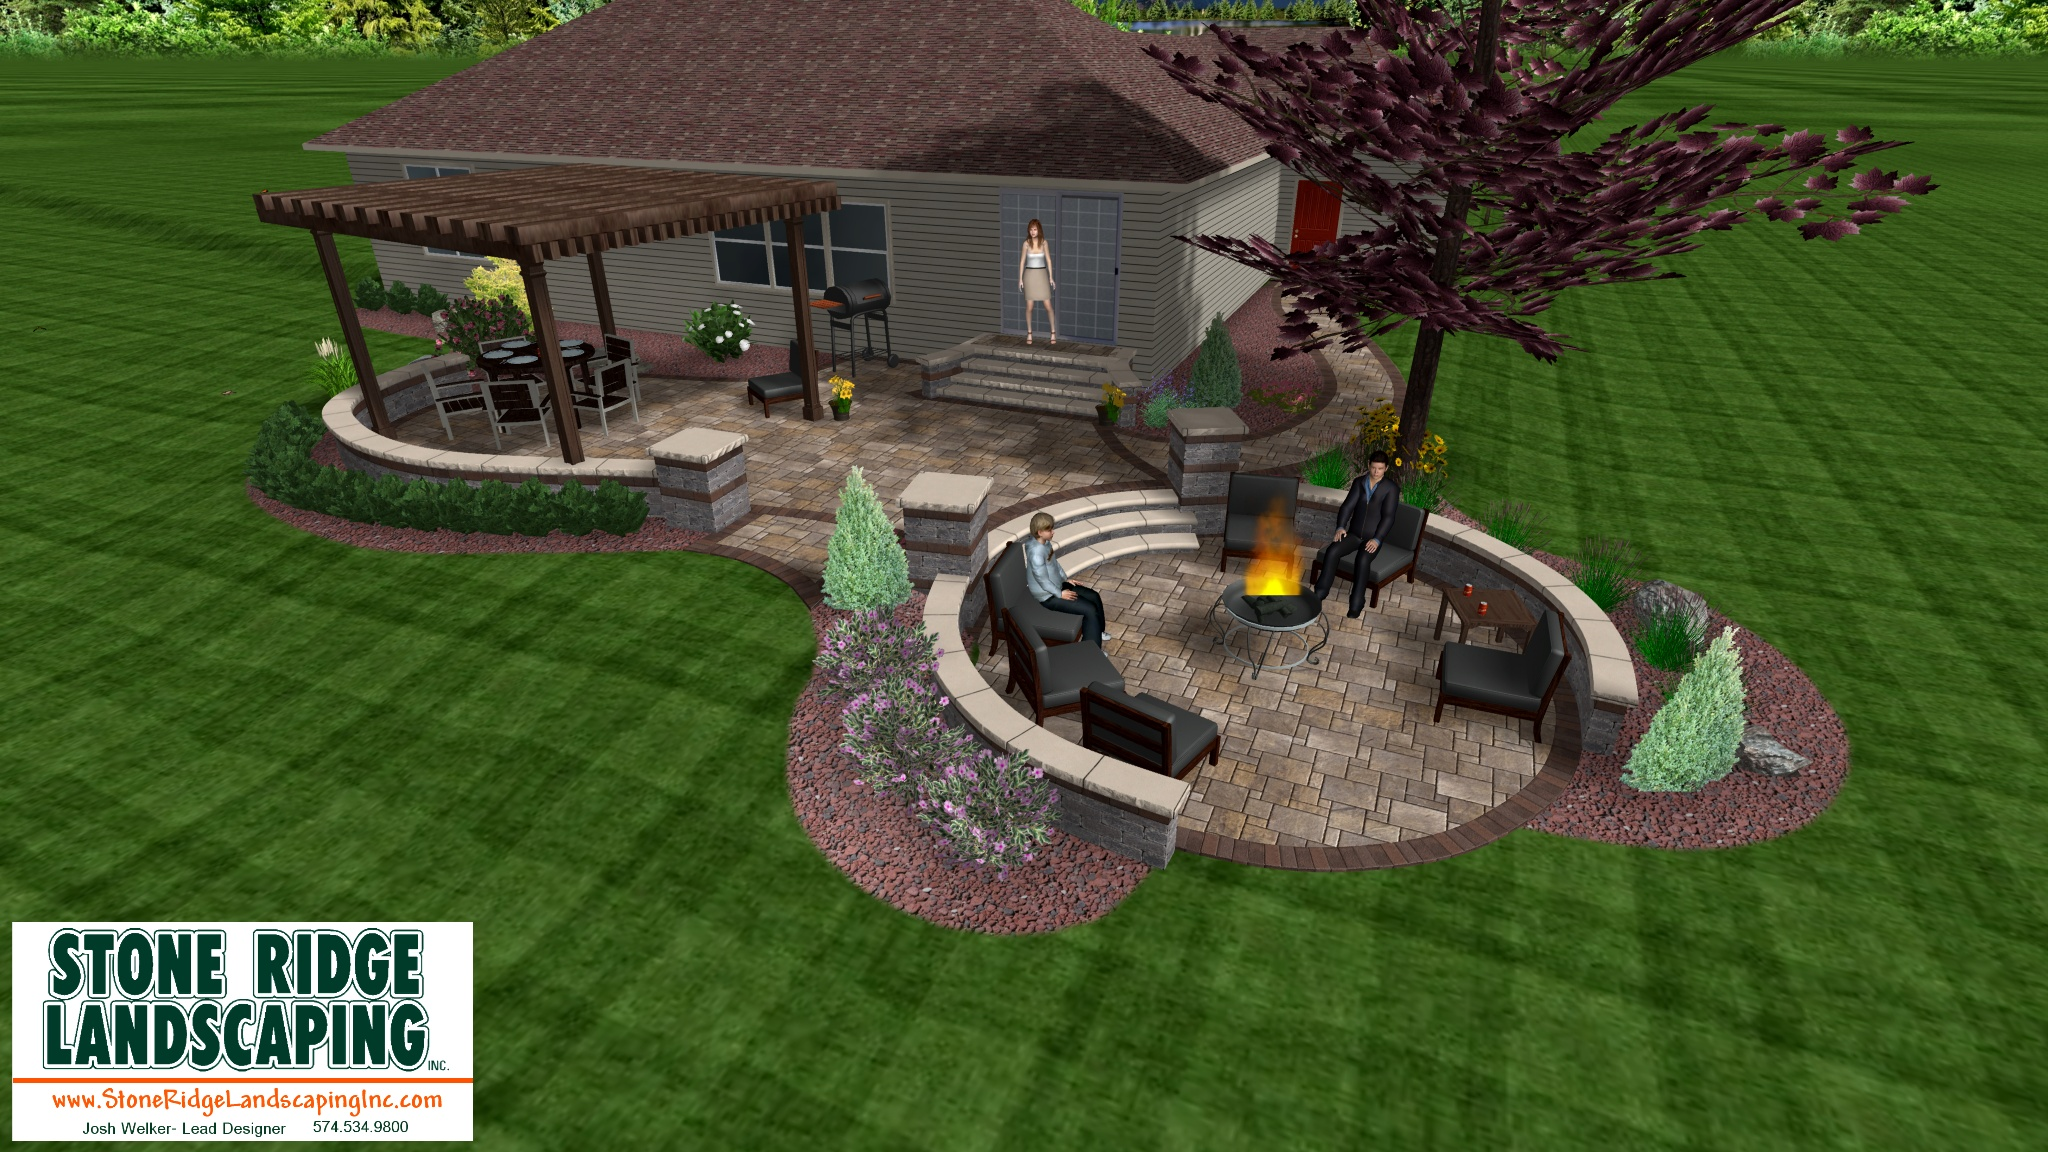 Fire-Pit-Patio-Pergola-Sitting-Walls.jpg